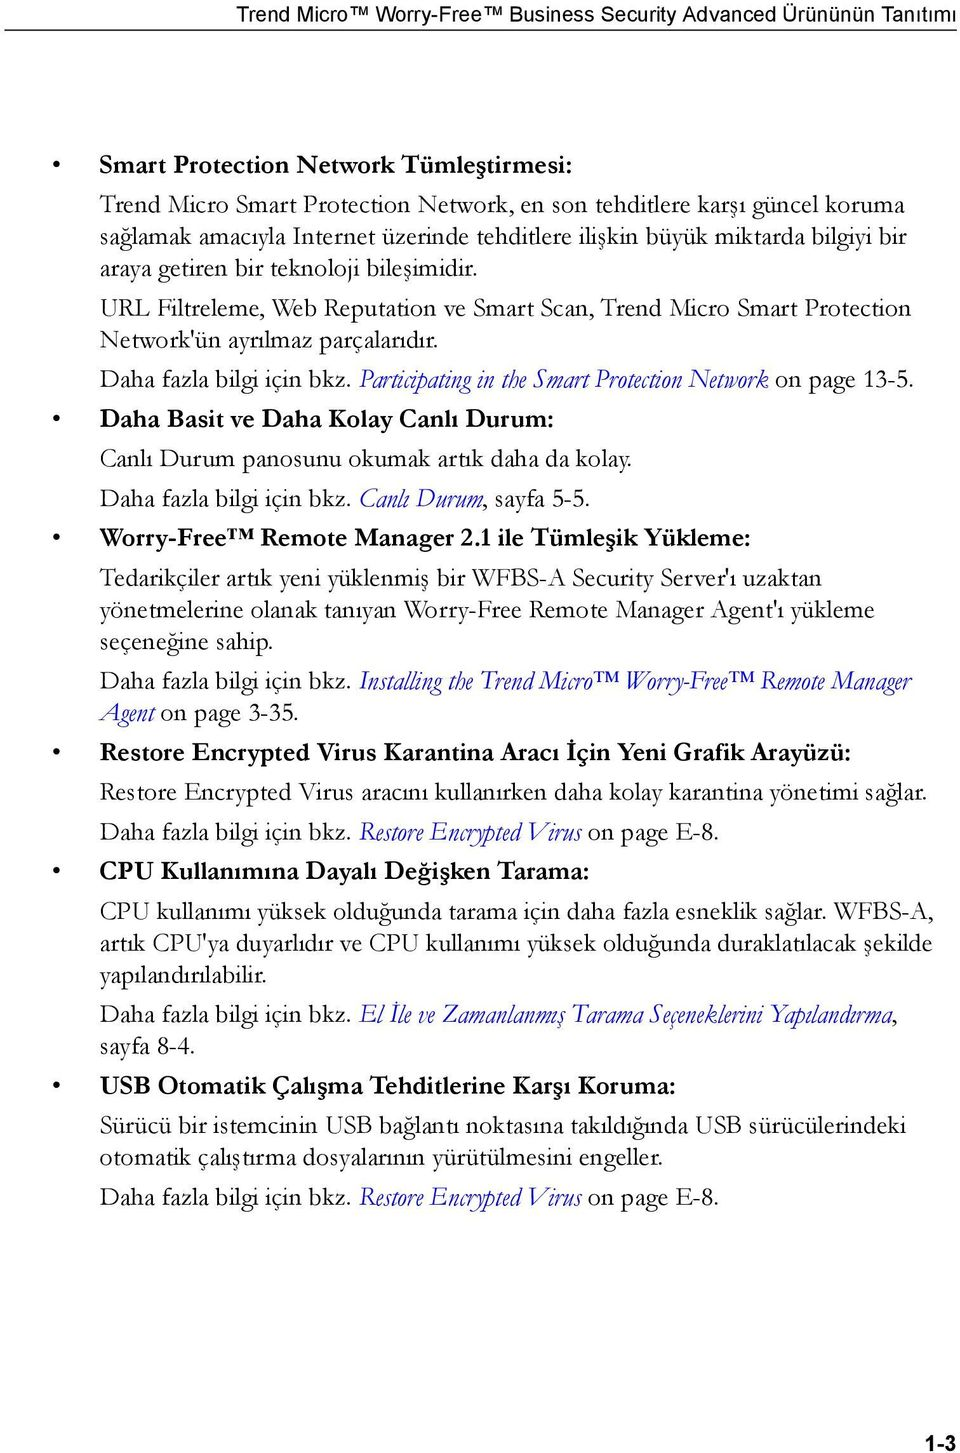 URL Filtreleme, Web Reputation ve Smart Scan, Trend Micro Smart Protection Network'ün ayrılmaz parçalarıdır. Daha fazla bilgi için bkz. Participating in the Smart Protection Network on page 13-5.